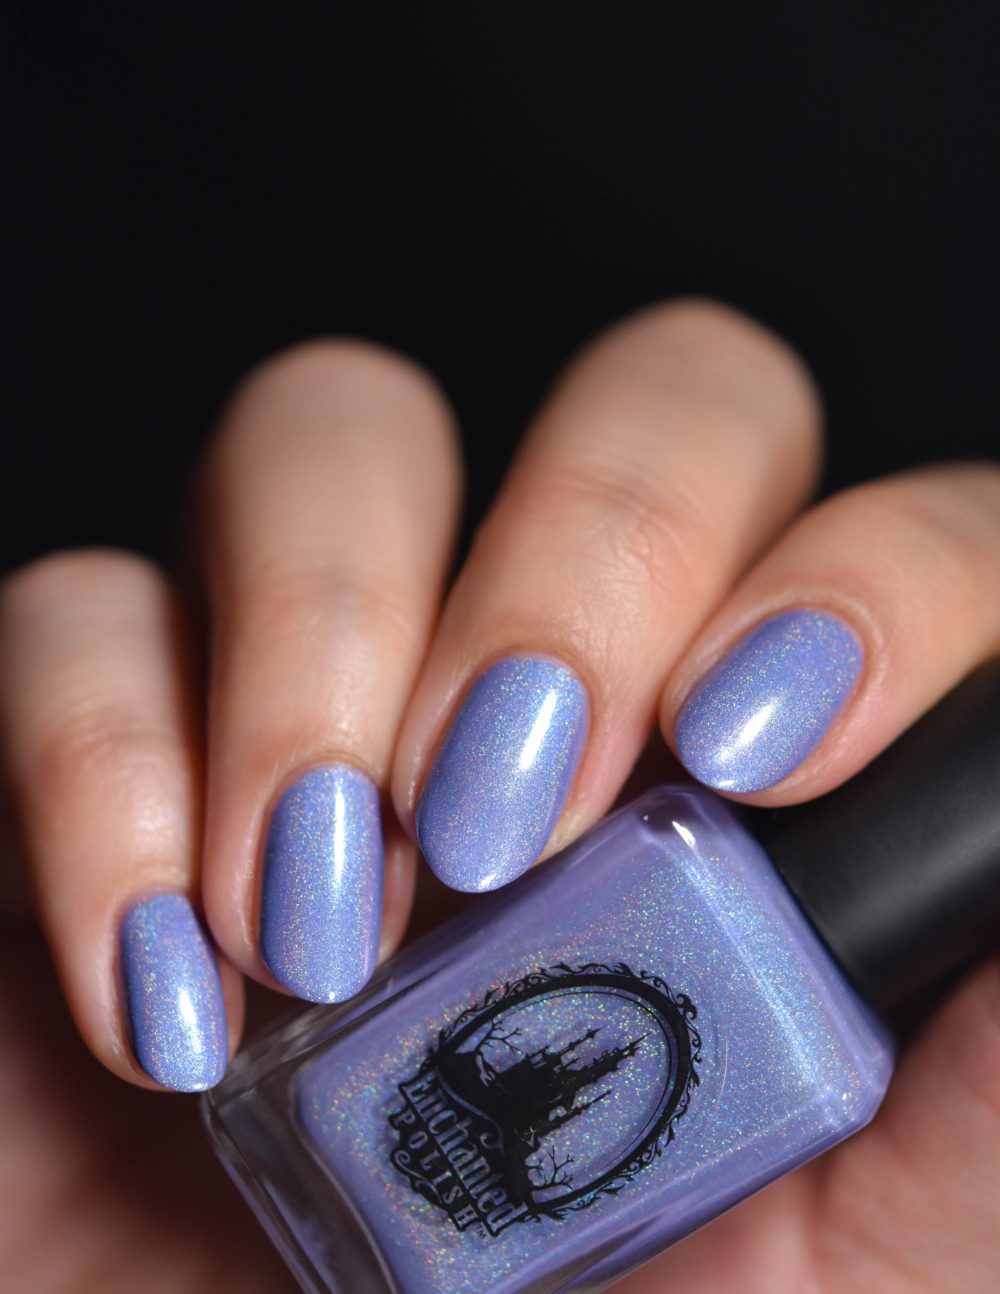 Enchanted_Polish-Heliotrope-6